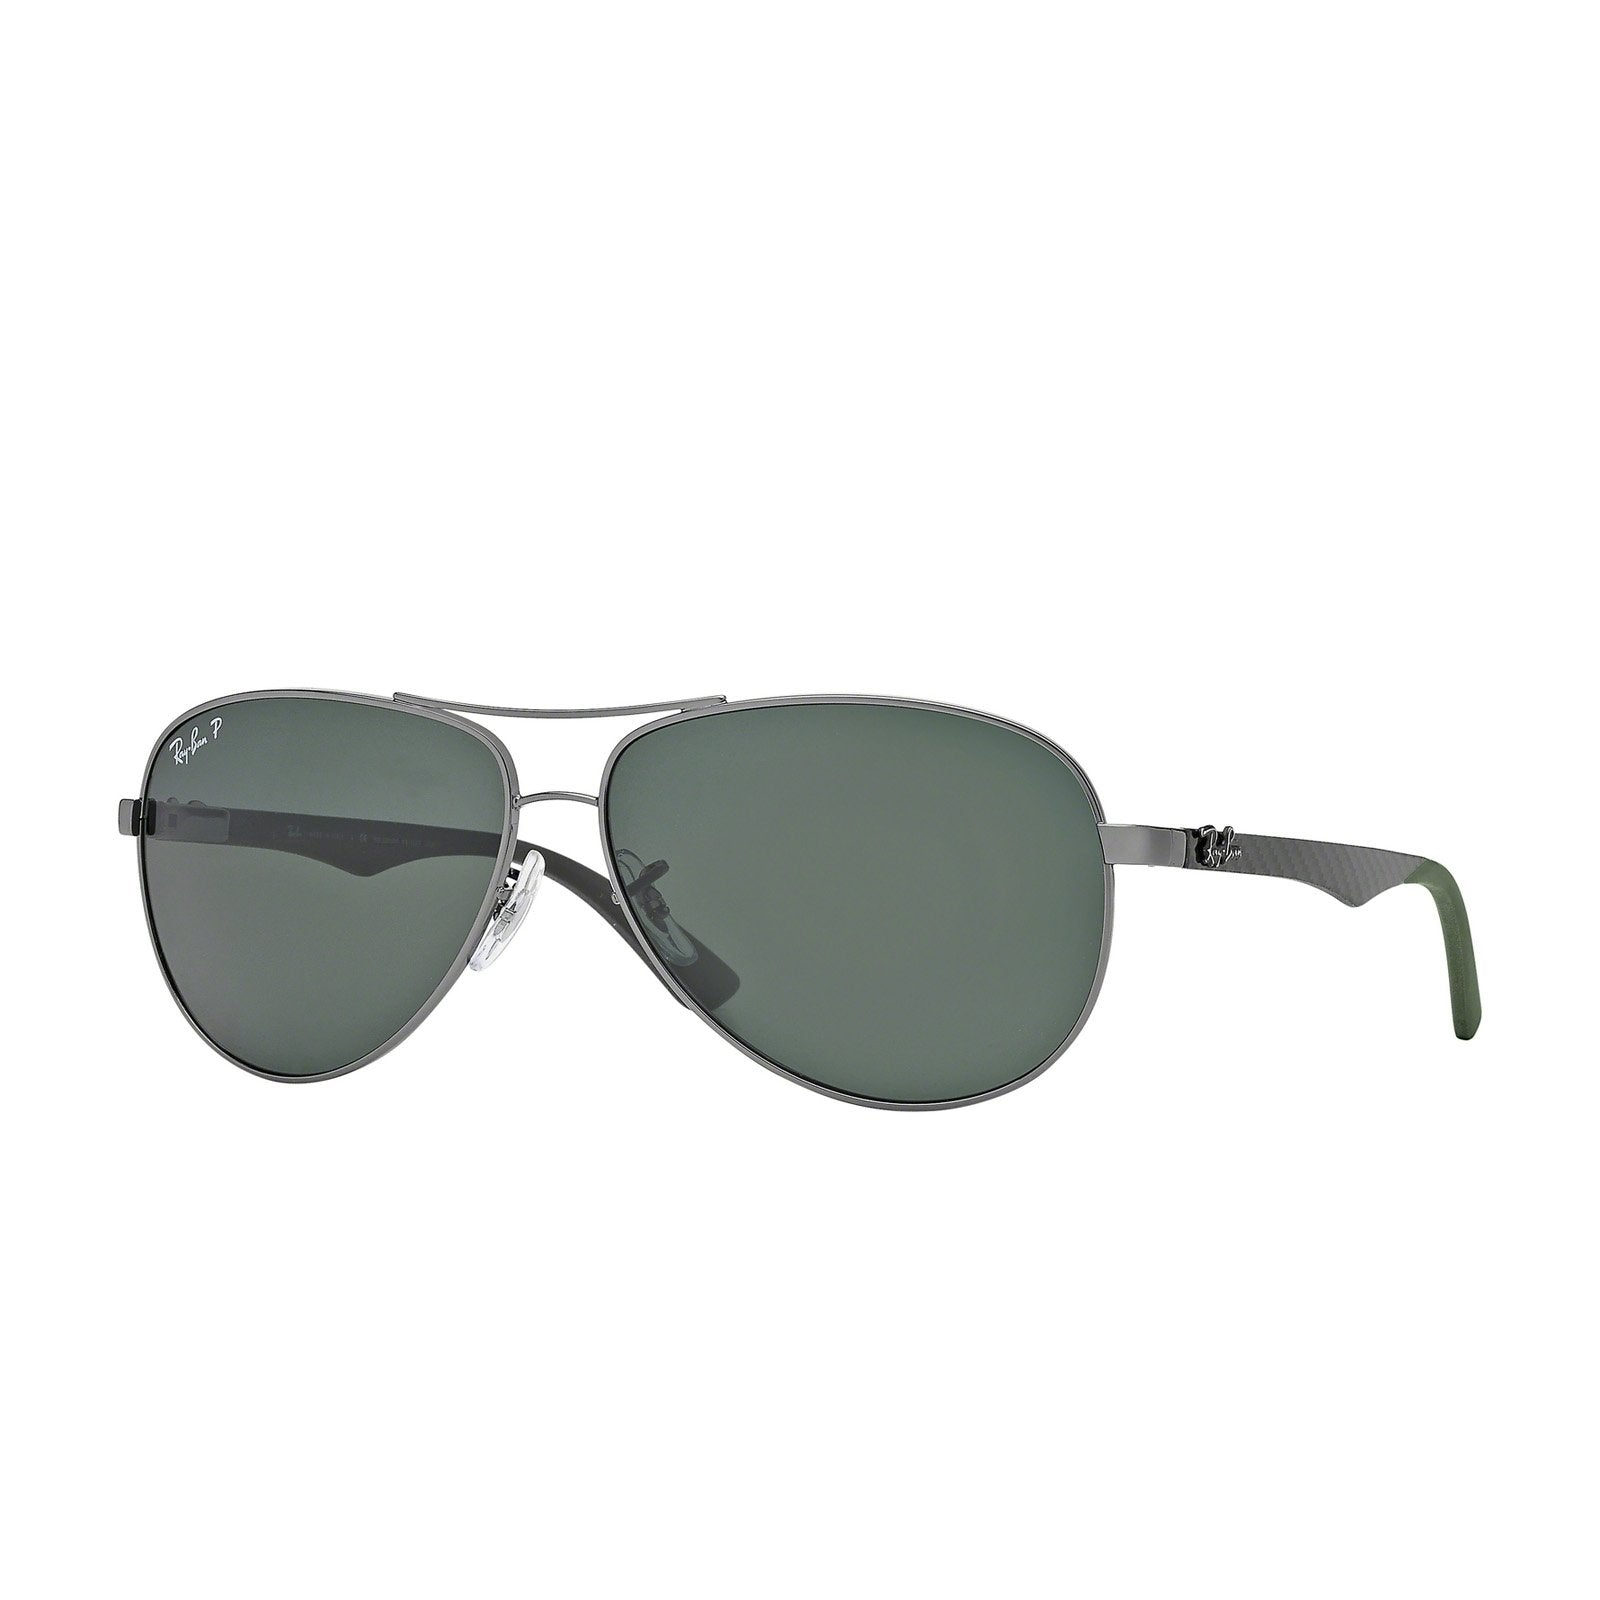 Ray Ban RB8313 004/N5 61mm 1 4e0QNYK